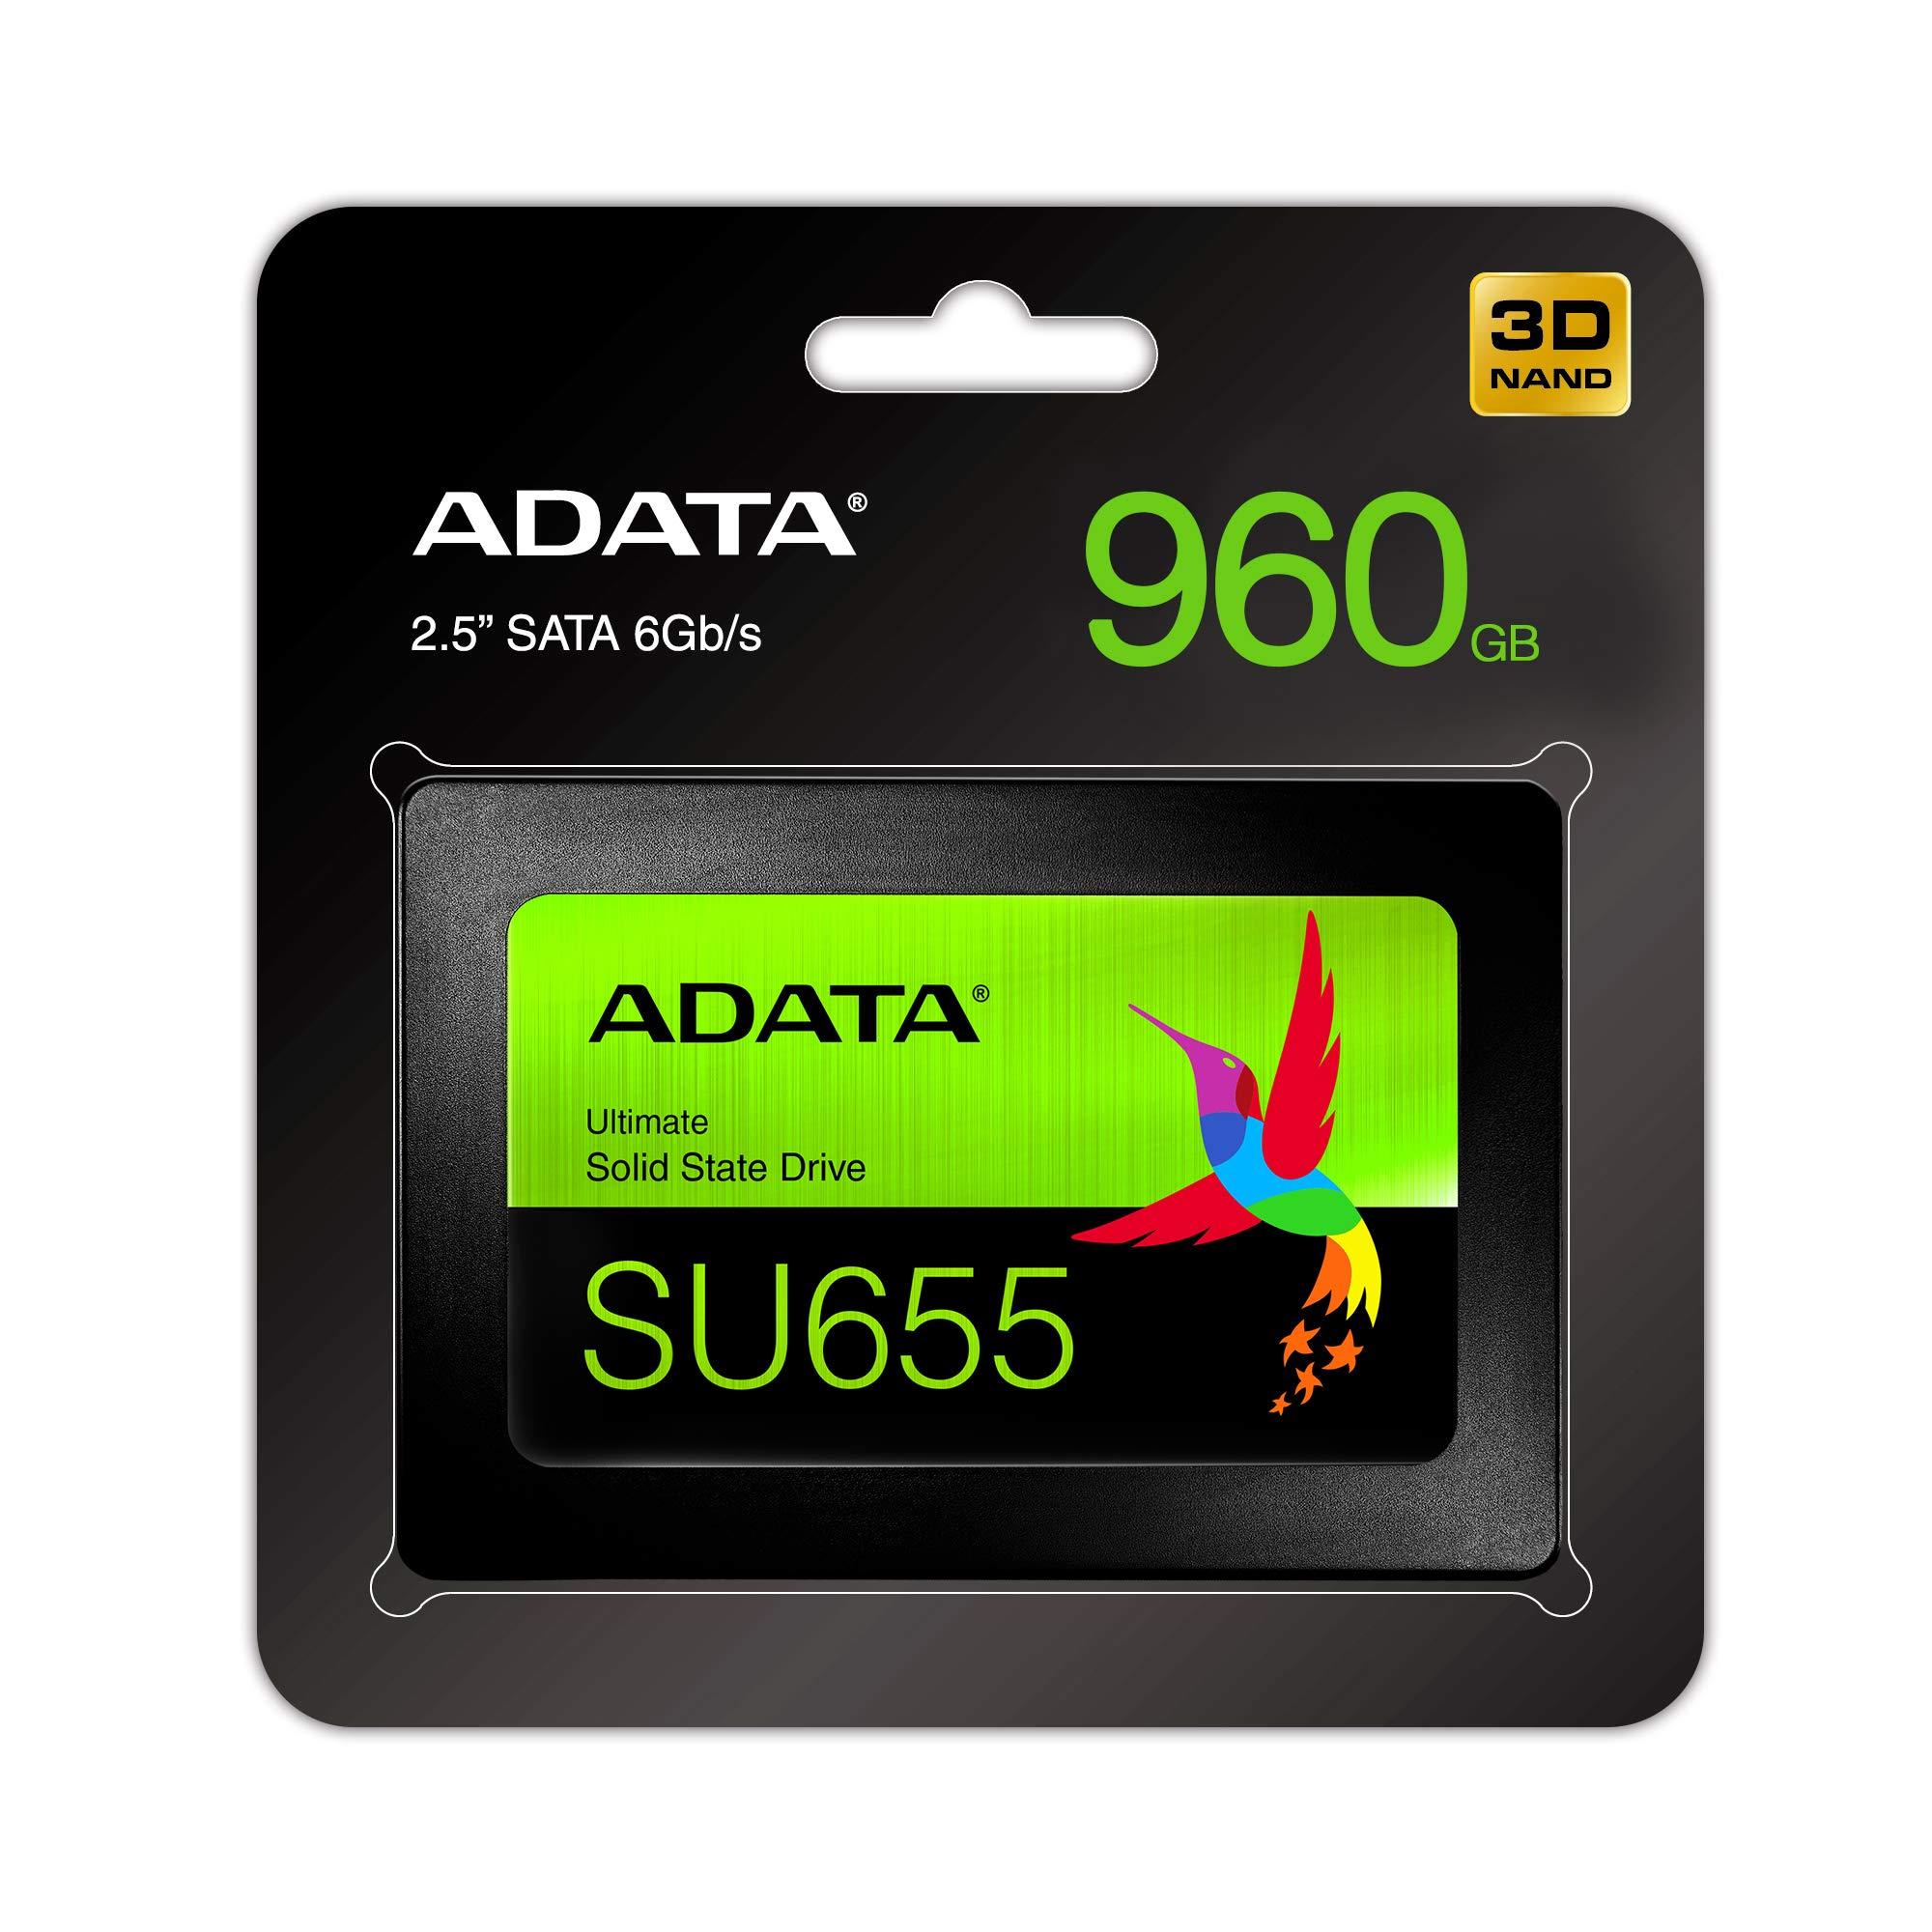 ADATA SU655 960GB 3D NAND 2.5 Inch SATA III High Speed Read Up to 520MB/S Internal SSD (ASU655SS-960GT-C) by ADATA (Image #4)